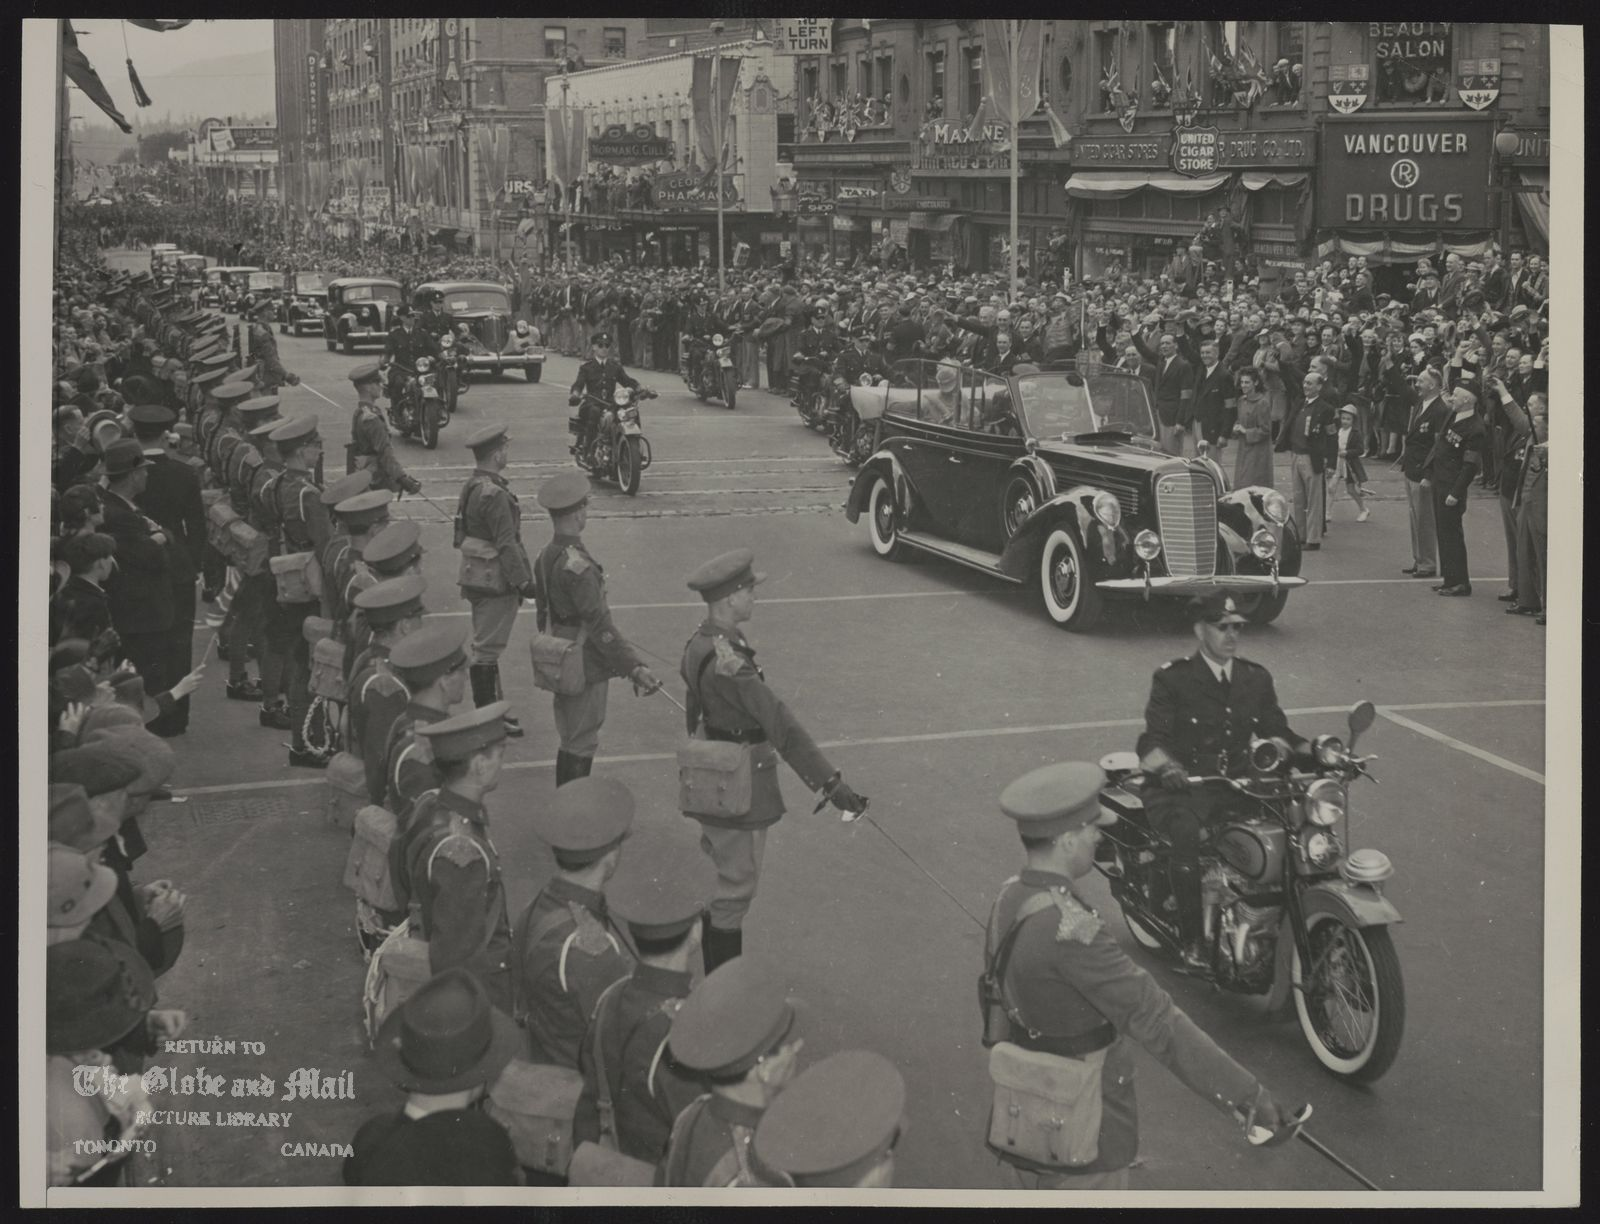 ROYAL FAMILY GREAT BRITAIN KING GEORGE VI & QUEEN ELIZABETH VISIT TO CANADA, 1939 BRITISH COLUMBIANS GREAT ROYAL PAIR. King George VI and Queen Elizabeth were greeted by massed thousands in downtown Vancouver, B.C., May 29, [1939] on their 52-mile tour of the city.